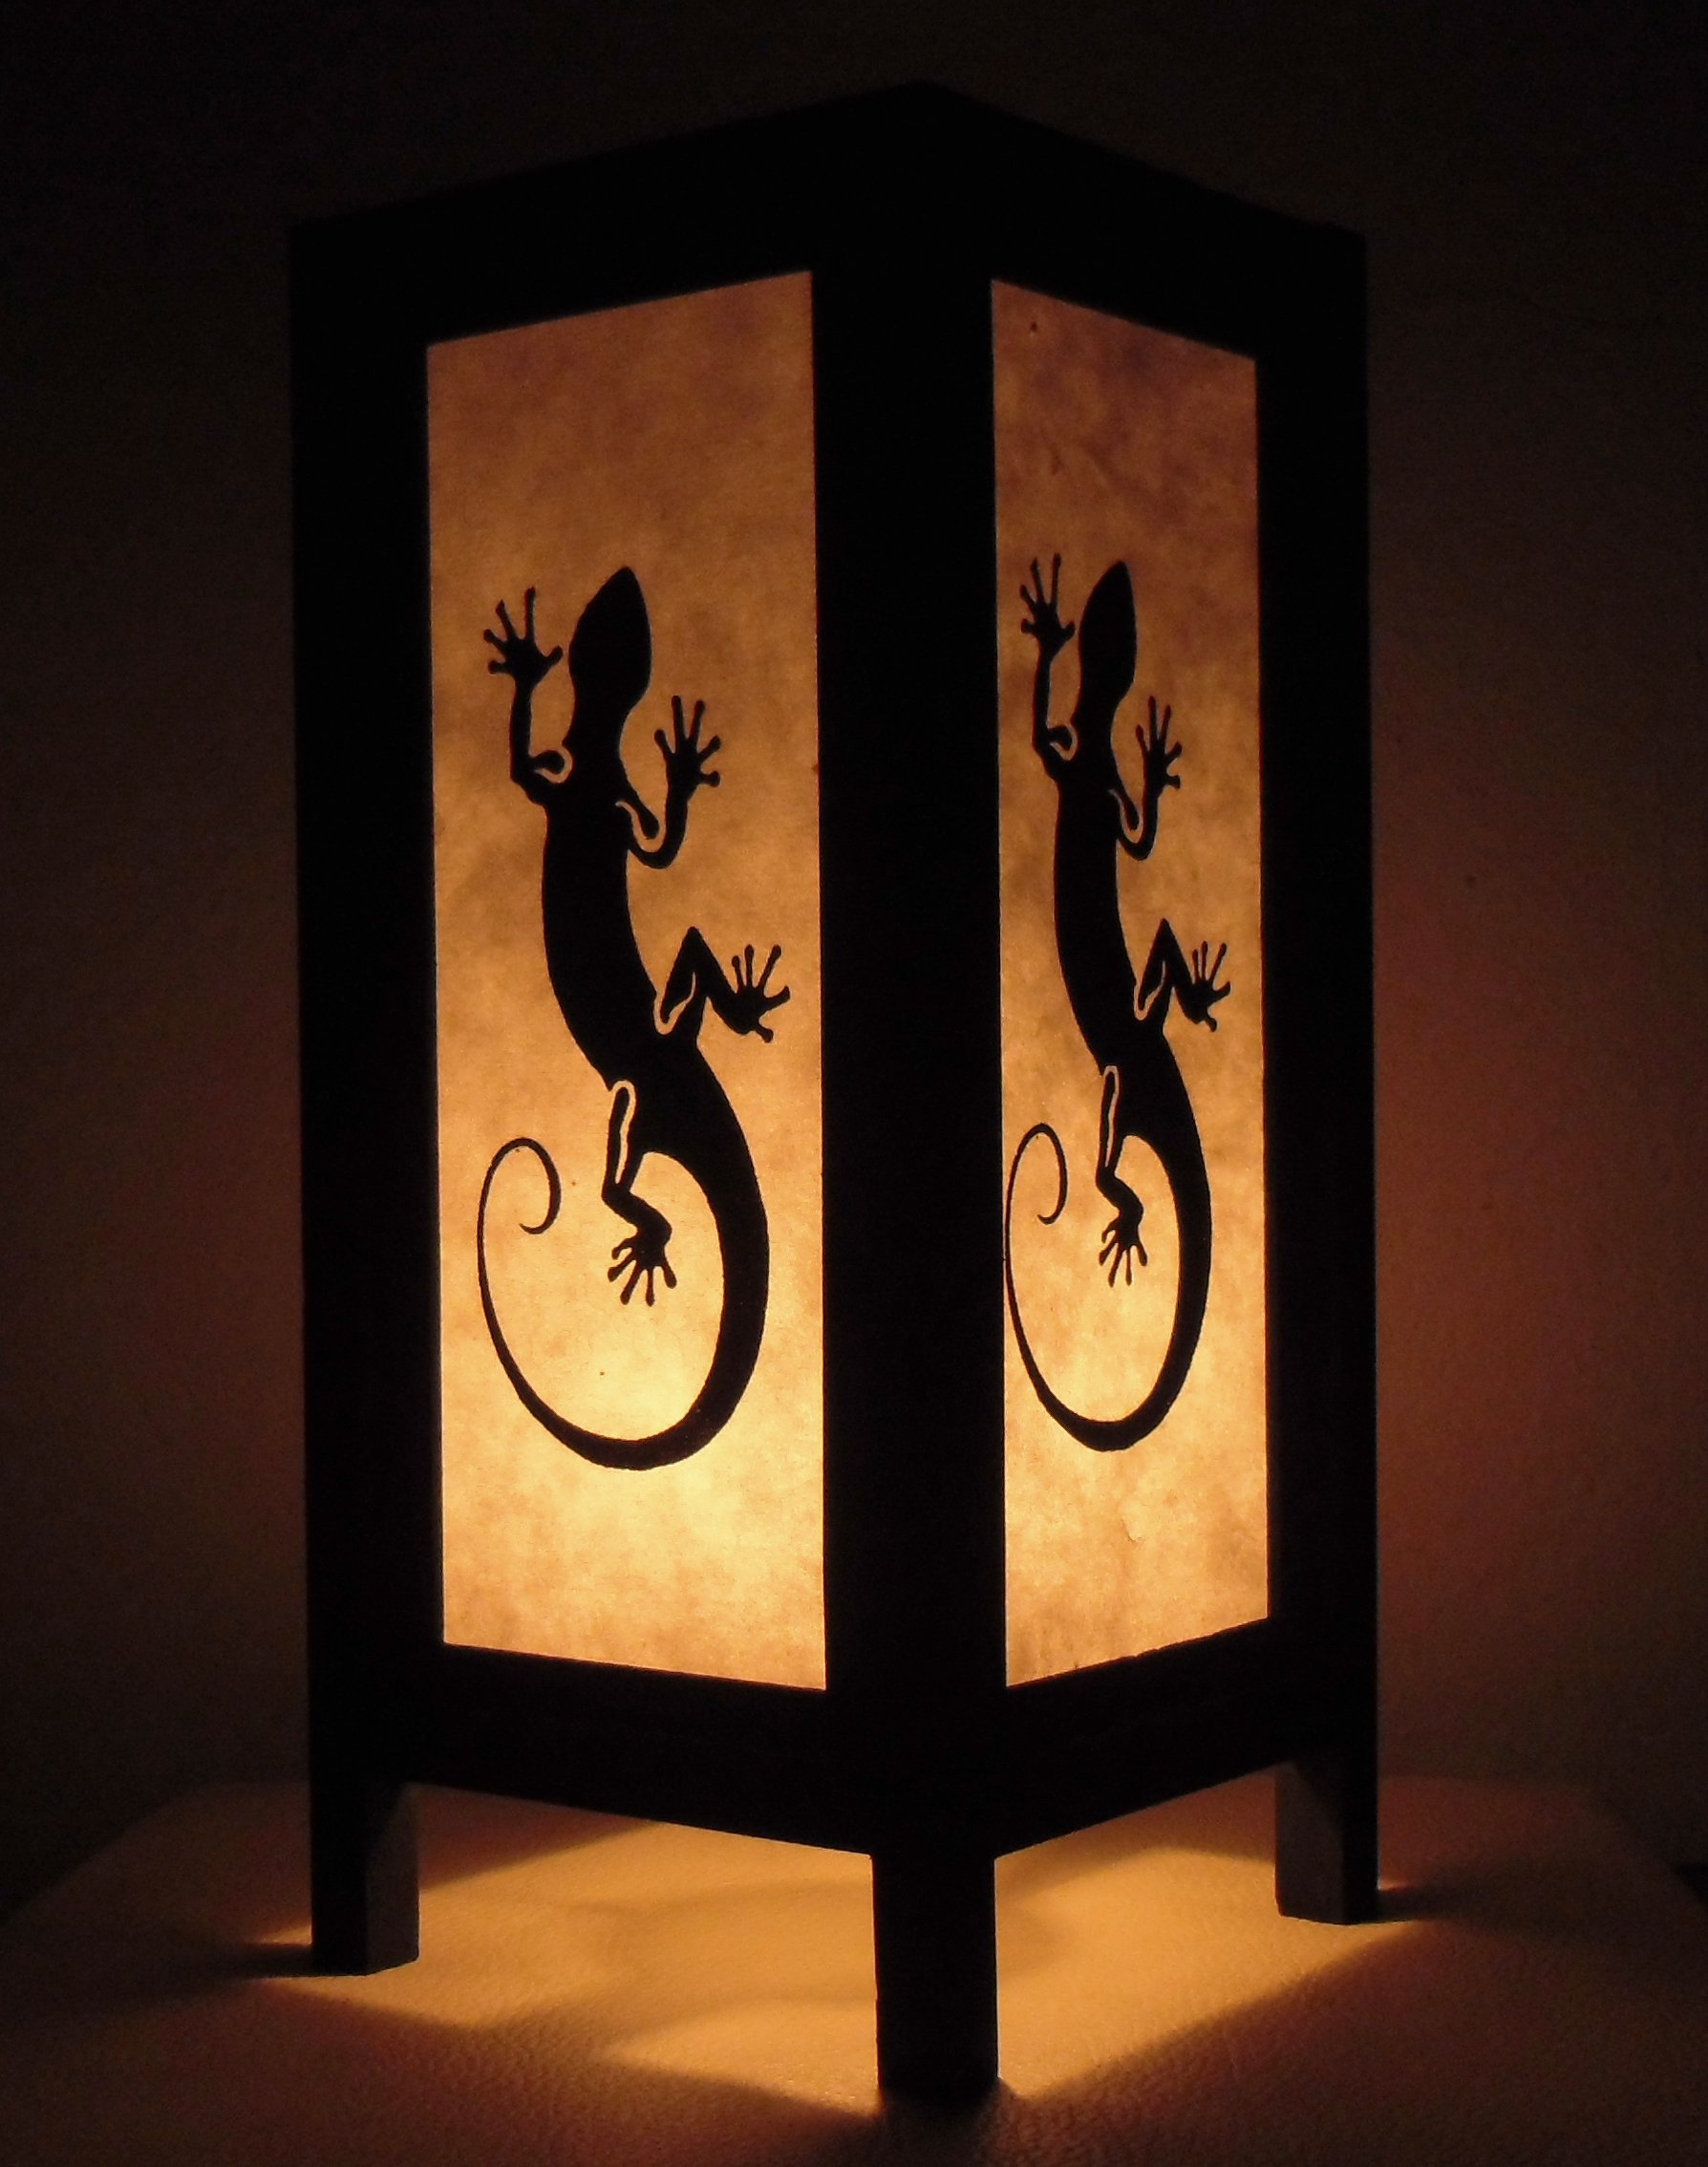 Thai Vintage Handmade Asian Oriental Black White Gecko Dragon Bedside Table Light or Floor Wood Paper Lamp Shades Home Bedroom Garden Decor Modern Design from Thailand by Red berry Thailand Lanna Lamp